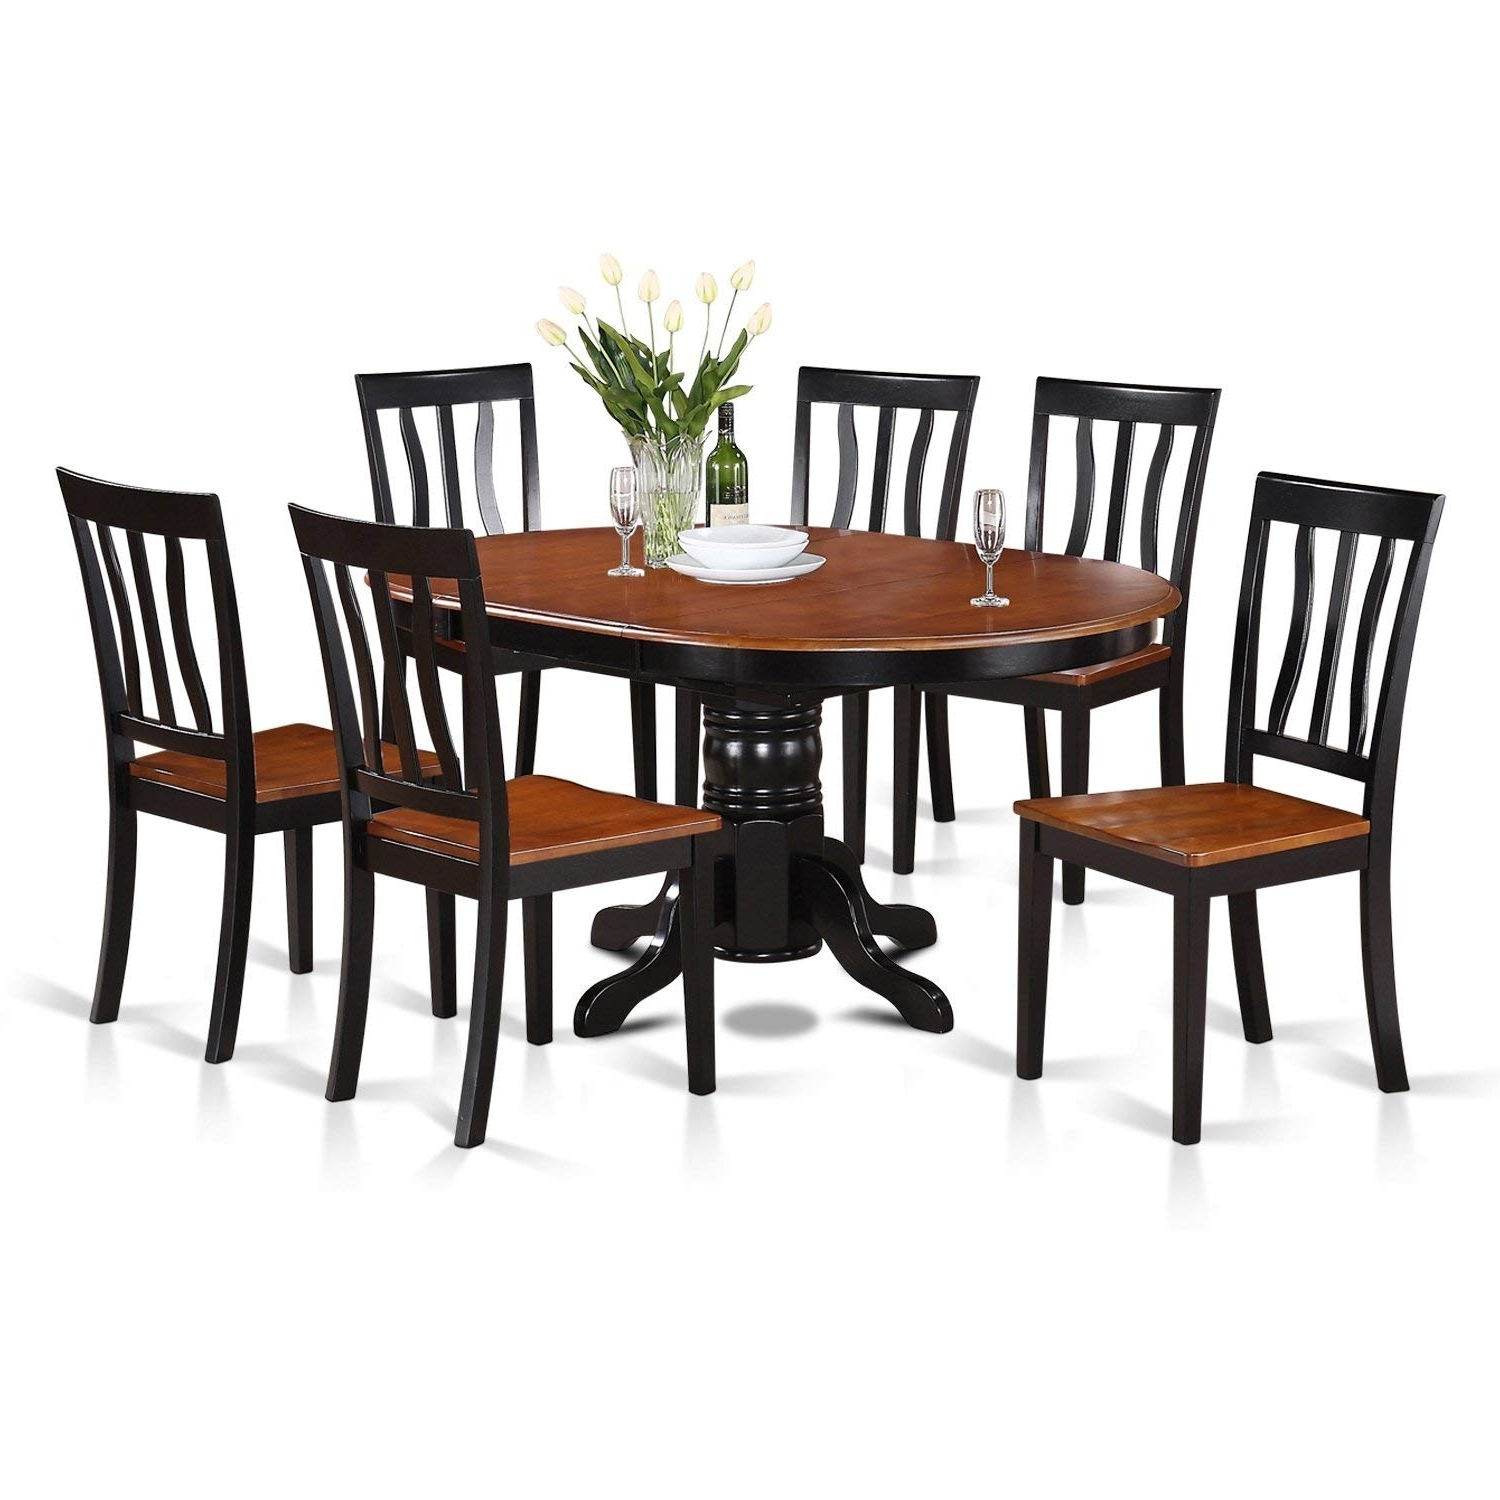 Fashionable Amazon: East West Furniture Avat7 Blk W 7 Piece Dining Table Set With Dining Tables Sets (View 2 of 25)